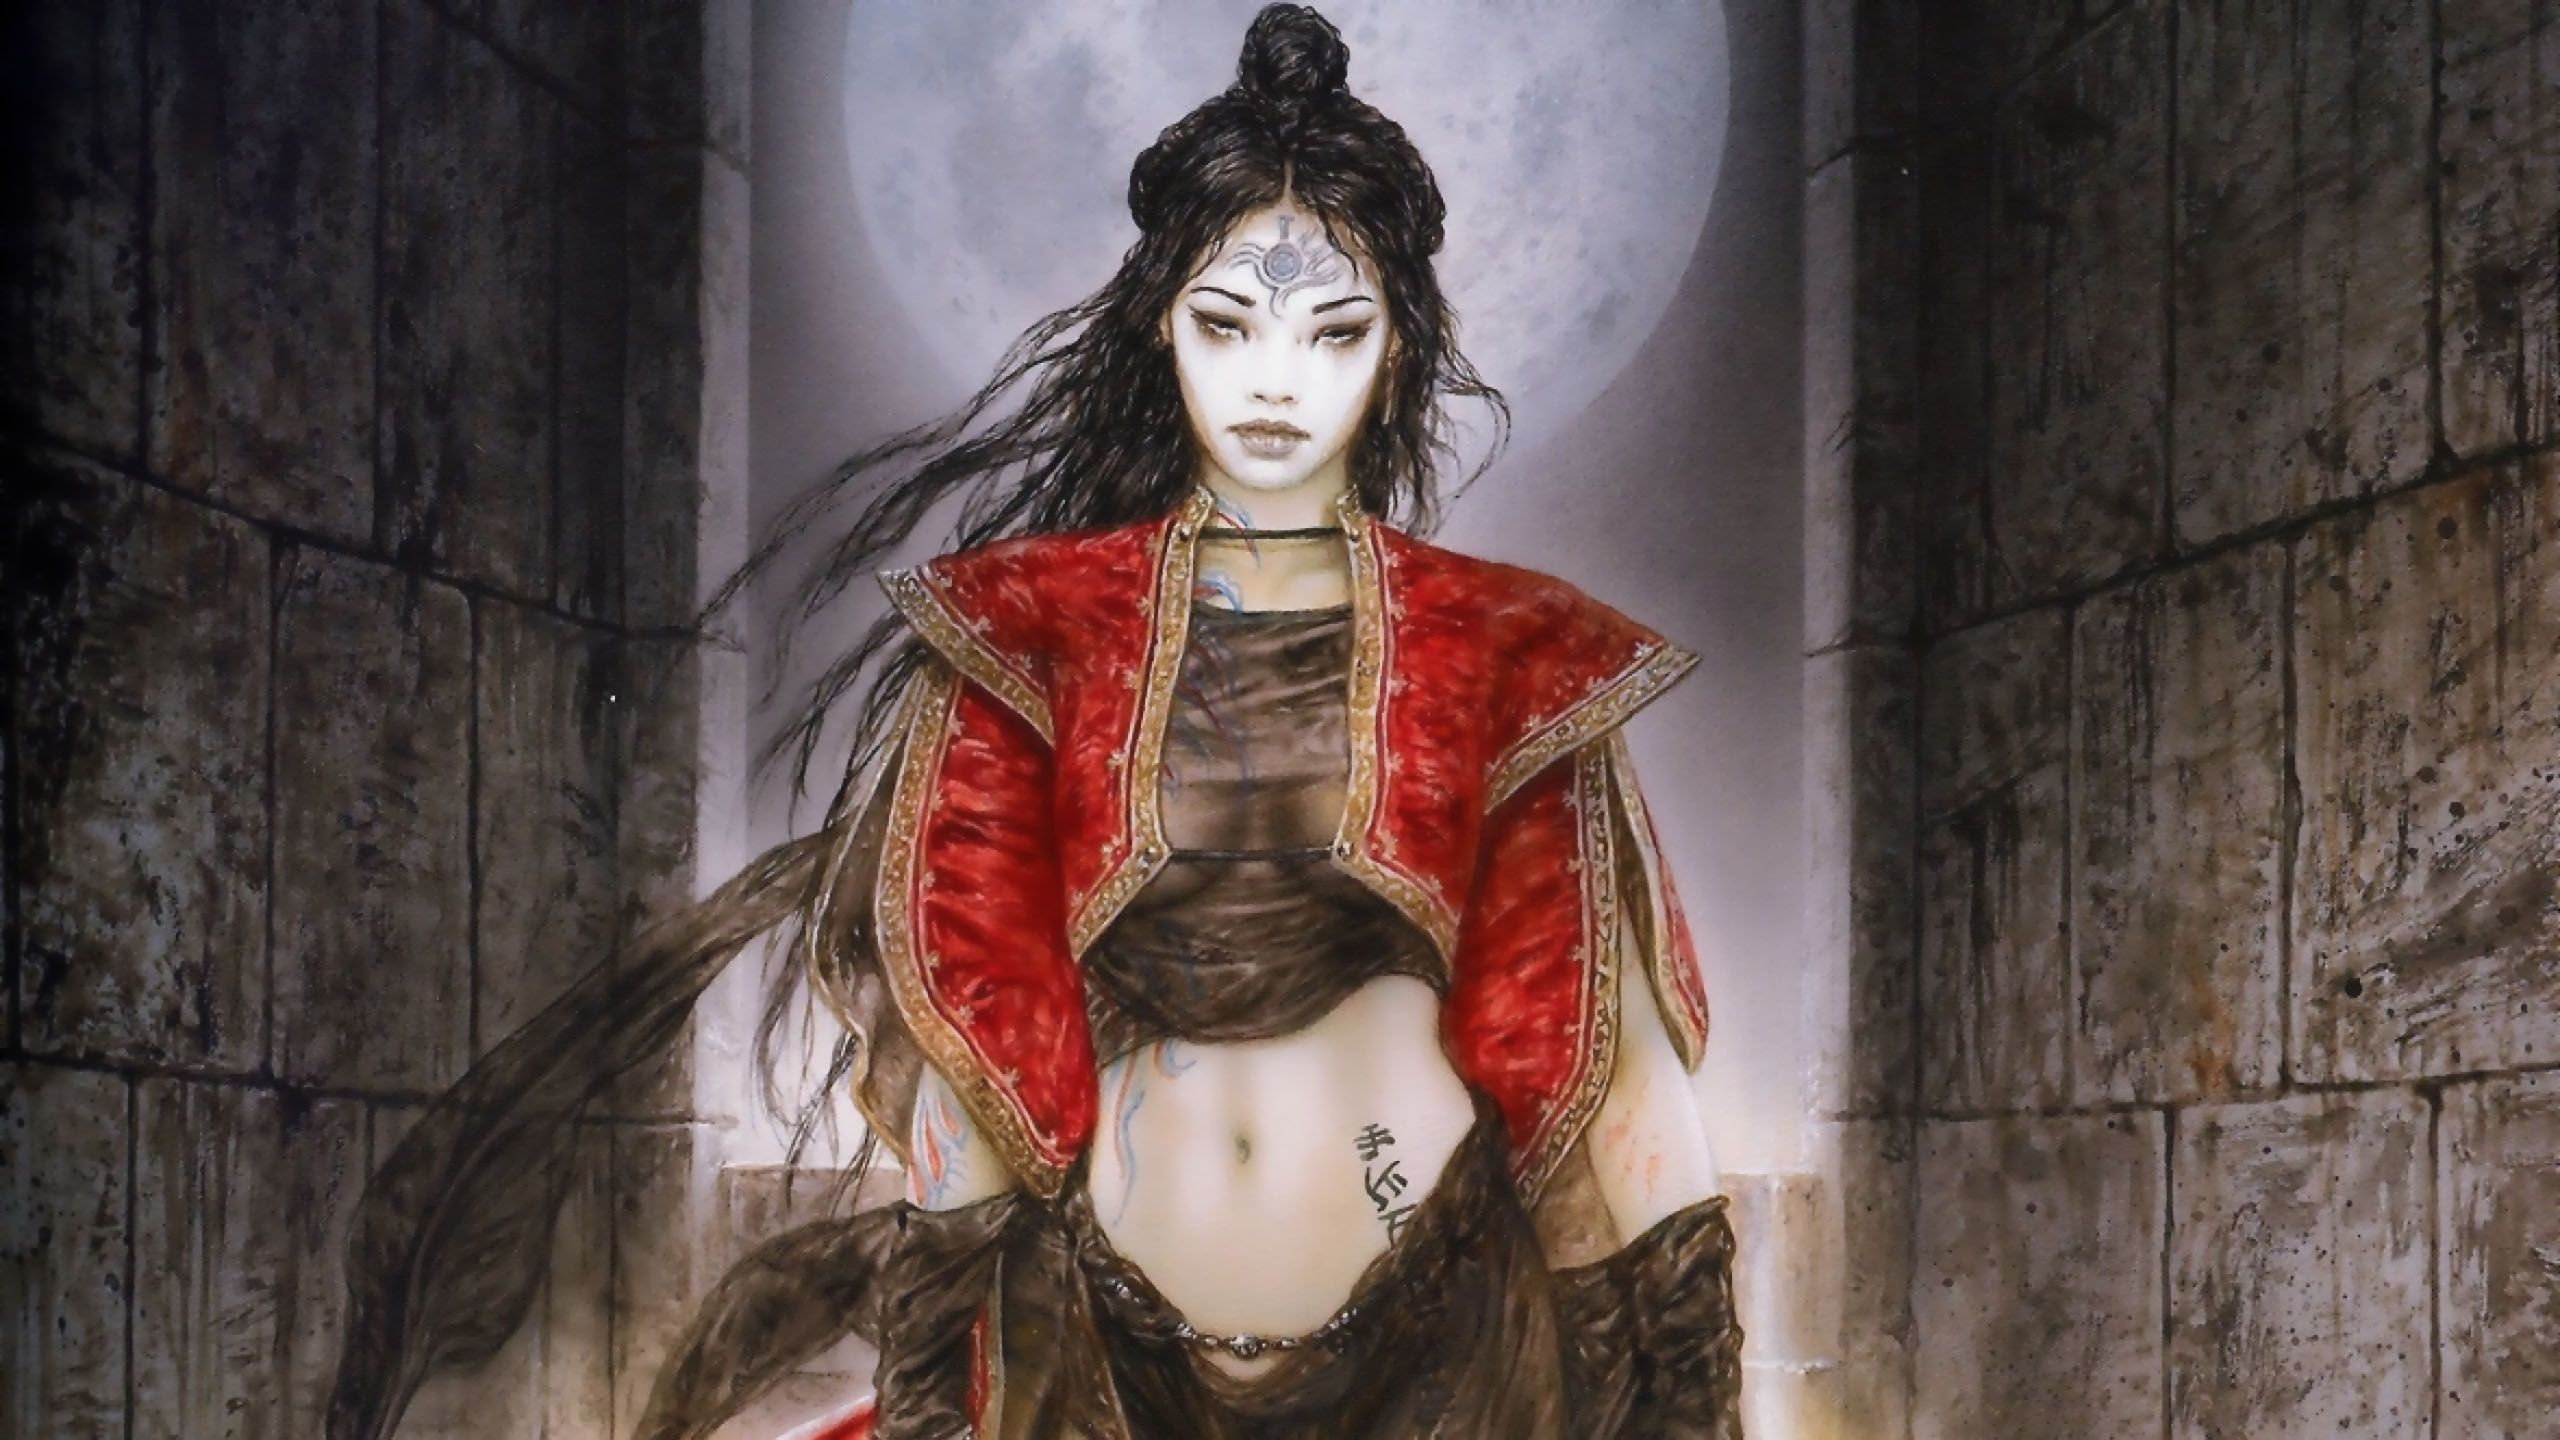 Res: 2560x1440, View, download, comment, and rate this  Luis Royo Wallpaper -  Wallpaper Abyss